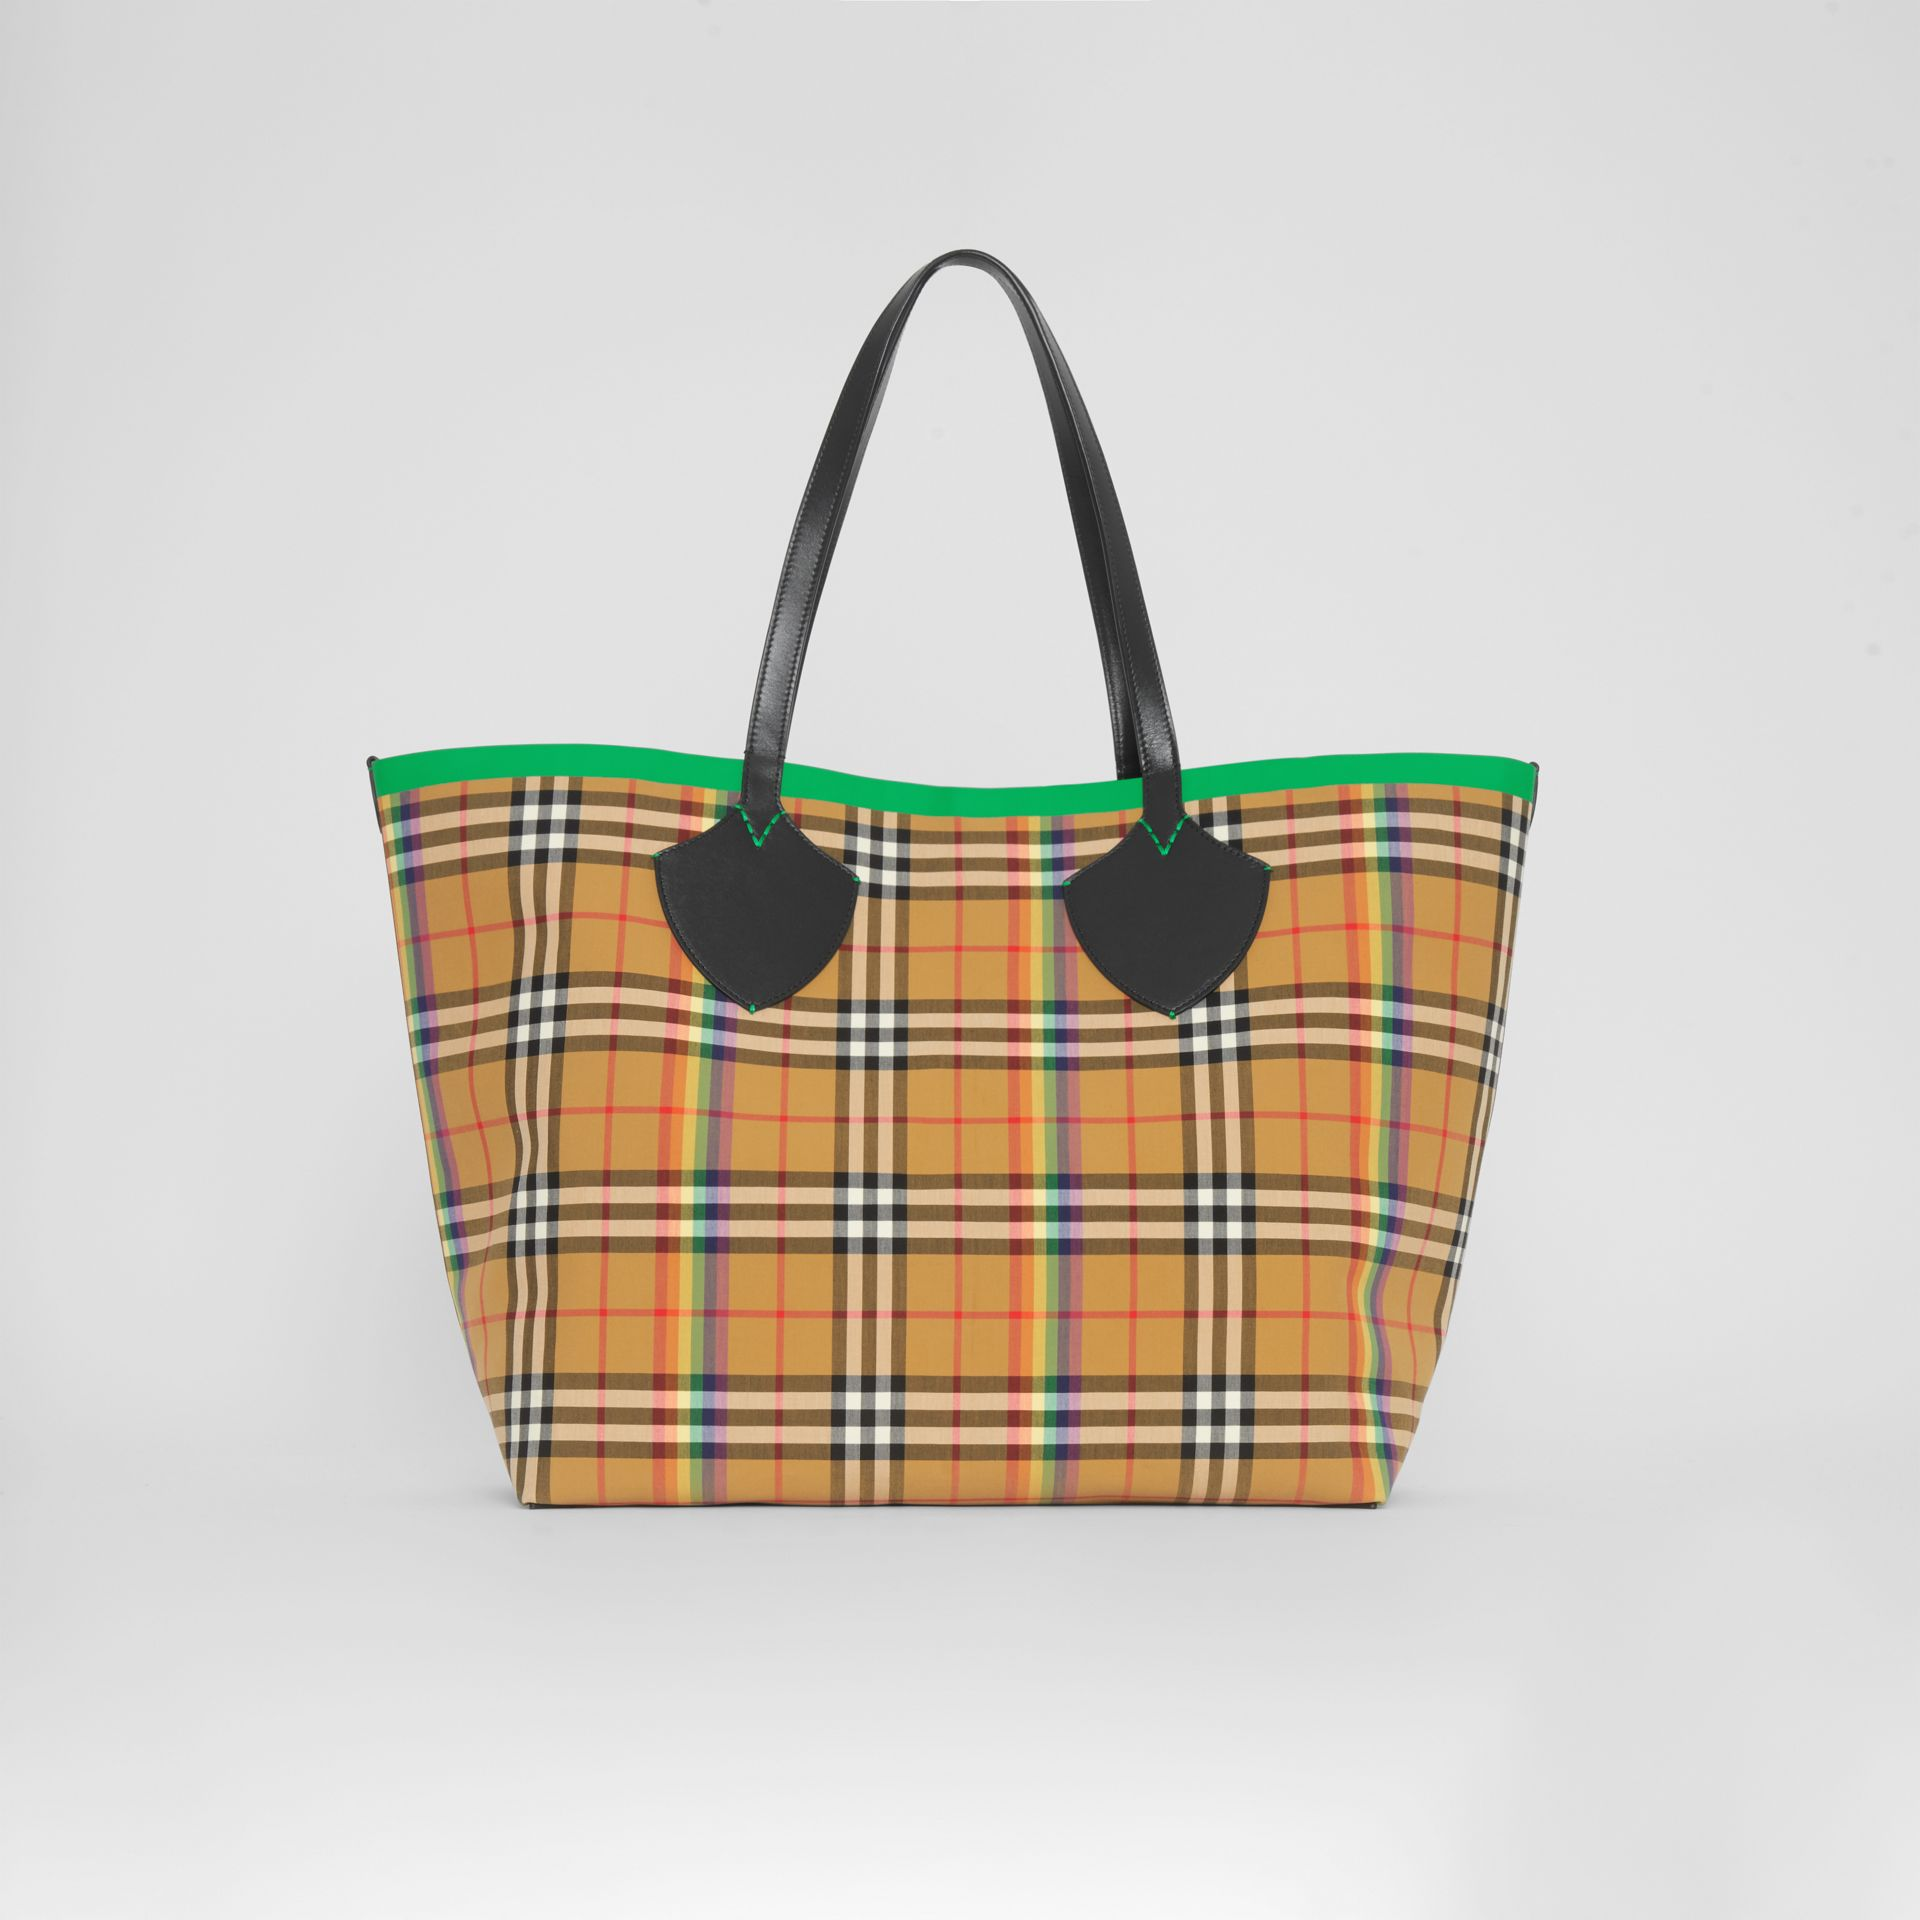 Sac tote The Giant à motif Rainbow Vintage check (Jaune Antique) | Burberry Canada - photo de la galerie 7